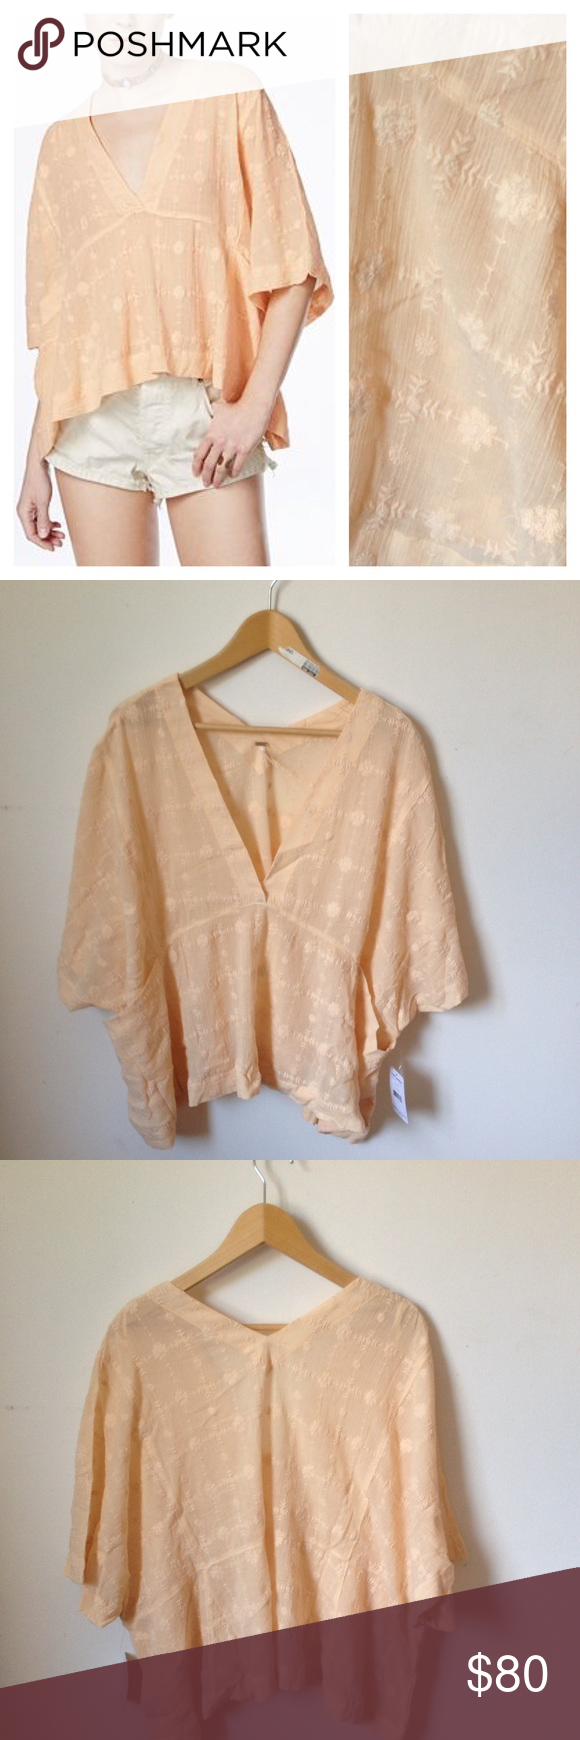 NEW Free People Amber Skies Flowy Top Blouse GORGEOUS top, super flattering, stylish and comfy! Lovely pale peach color with beautiful light embroidered details, slightly translucent. Oversized fit. Brand new with tags. Free People Tops